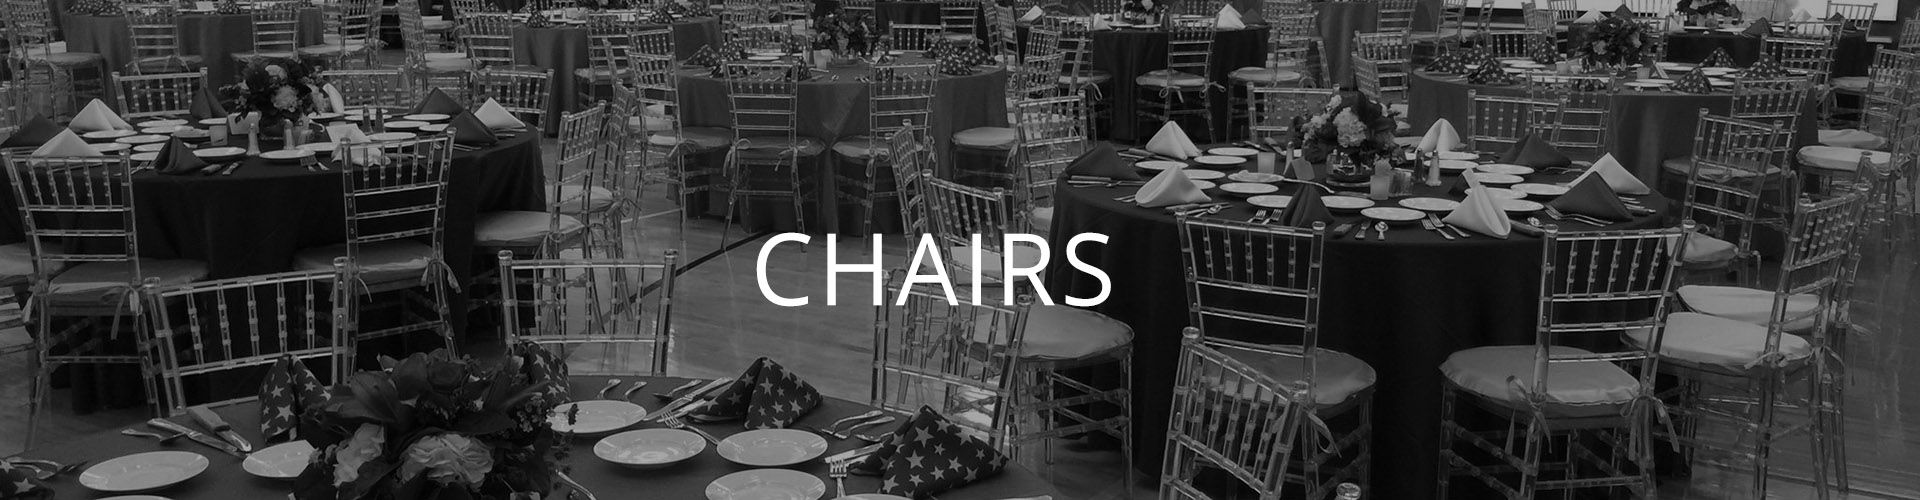 CHAIRS_TOP_IMAGEBW_WORDS.jpg